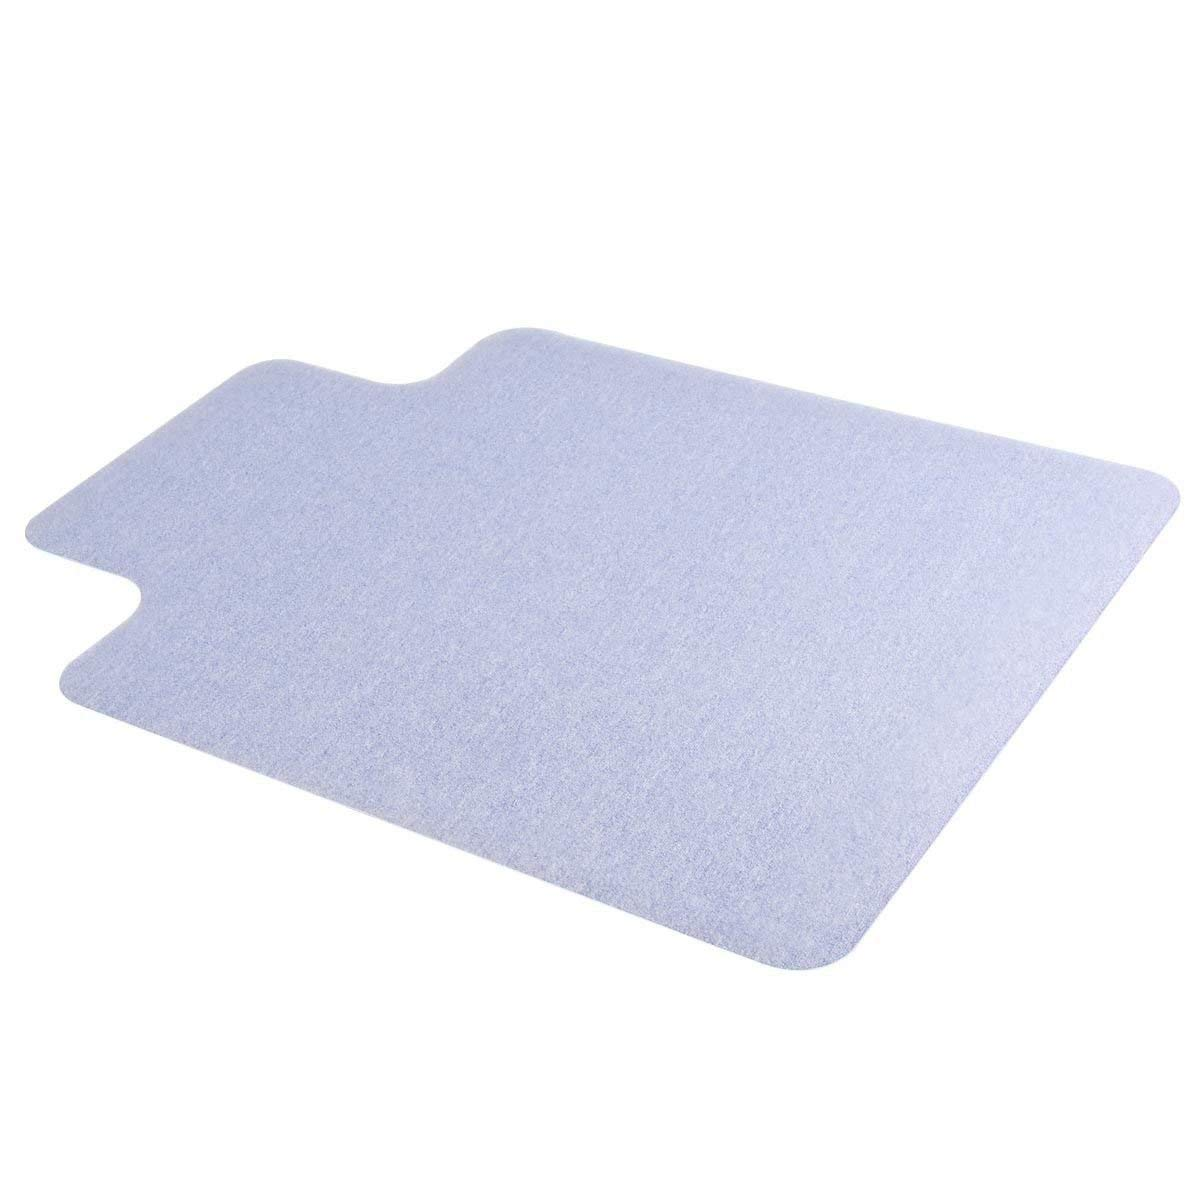 """COSTWAY 48"""" x 36"""" Clear PVC Office Chair Mat for Hard Floor Tile Protection to 1.50mm Thick (48"""" x 36"""")"""